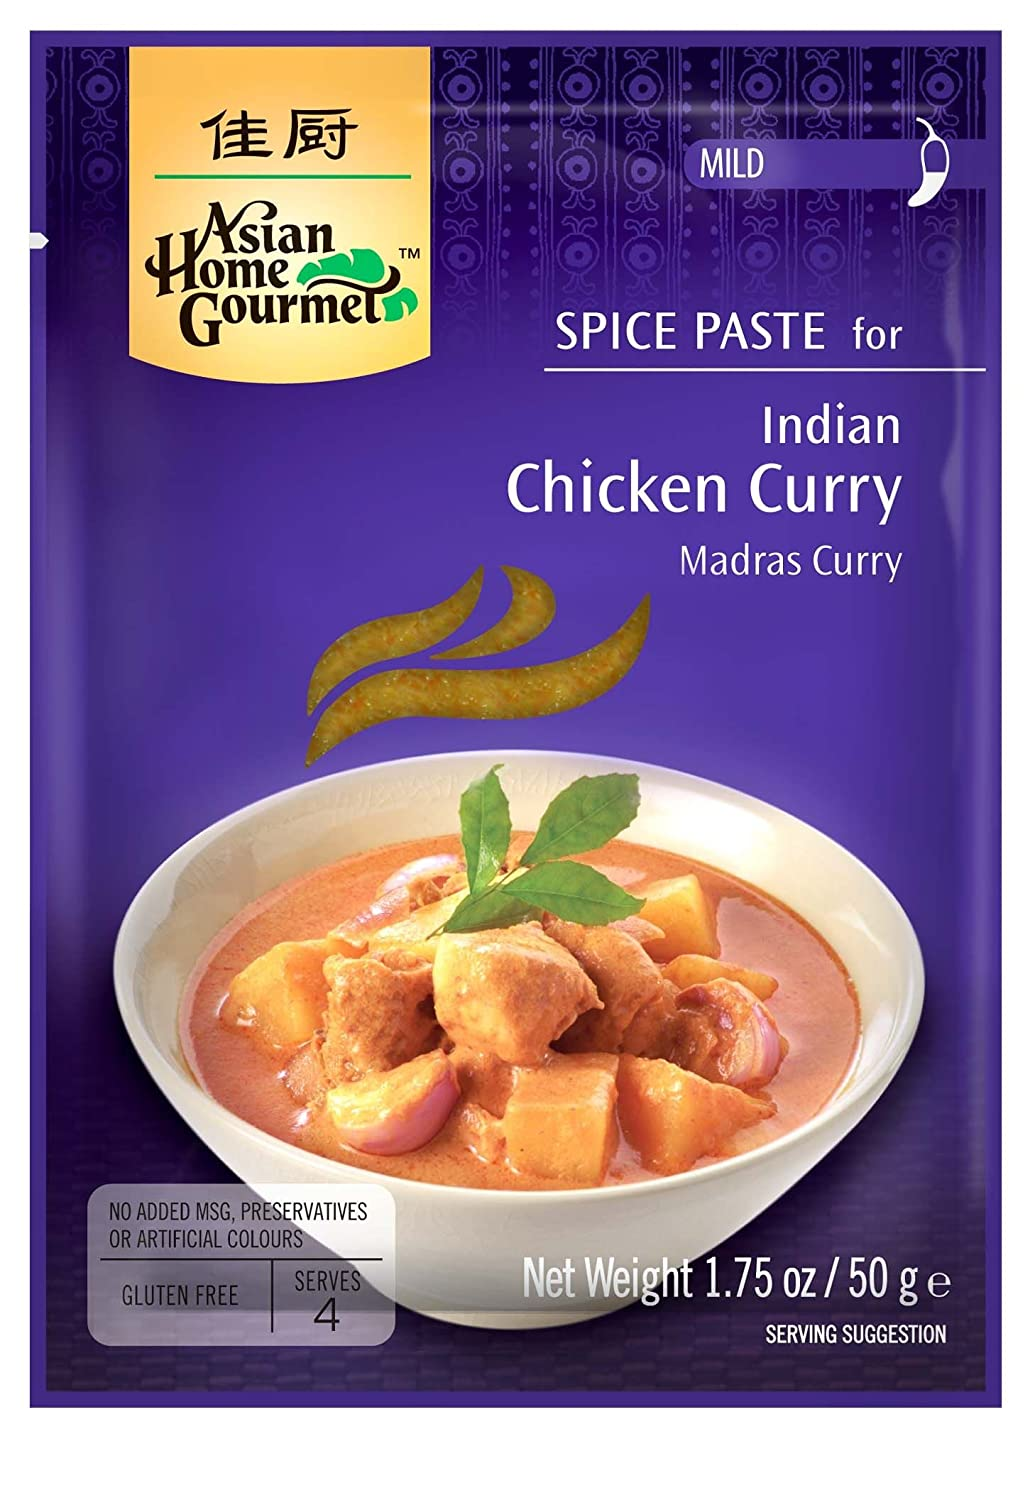 Asian Home Gourmet, Indian Spice Chicken Curry (Madras Curry) Mix, 1.75-Ounce Pouch (Pack of 12)